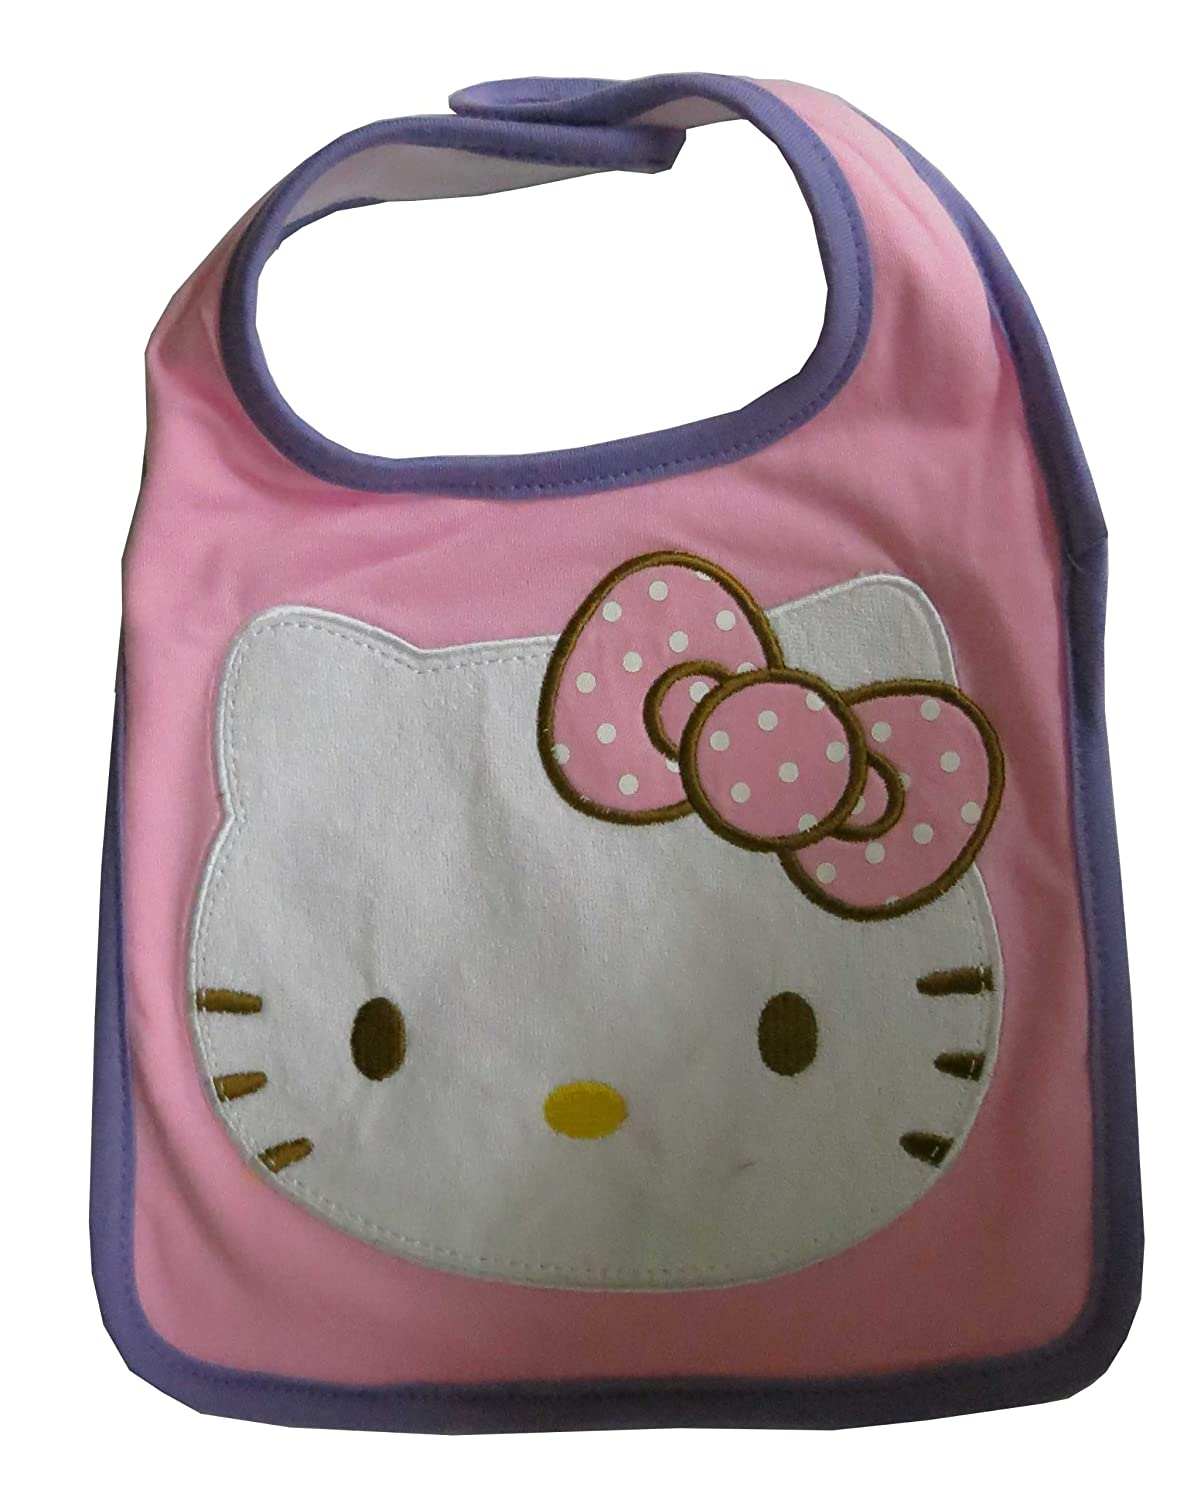 sanrio hello kitty baby bib everything kitty. Black Bedroom Furniture Sets. Home Design Ideas